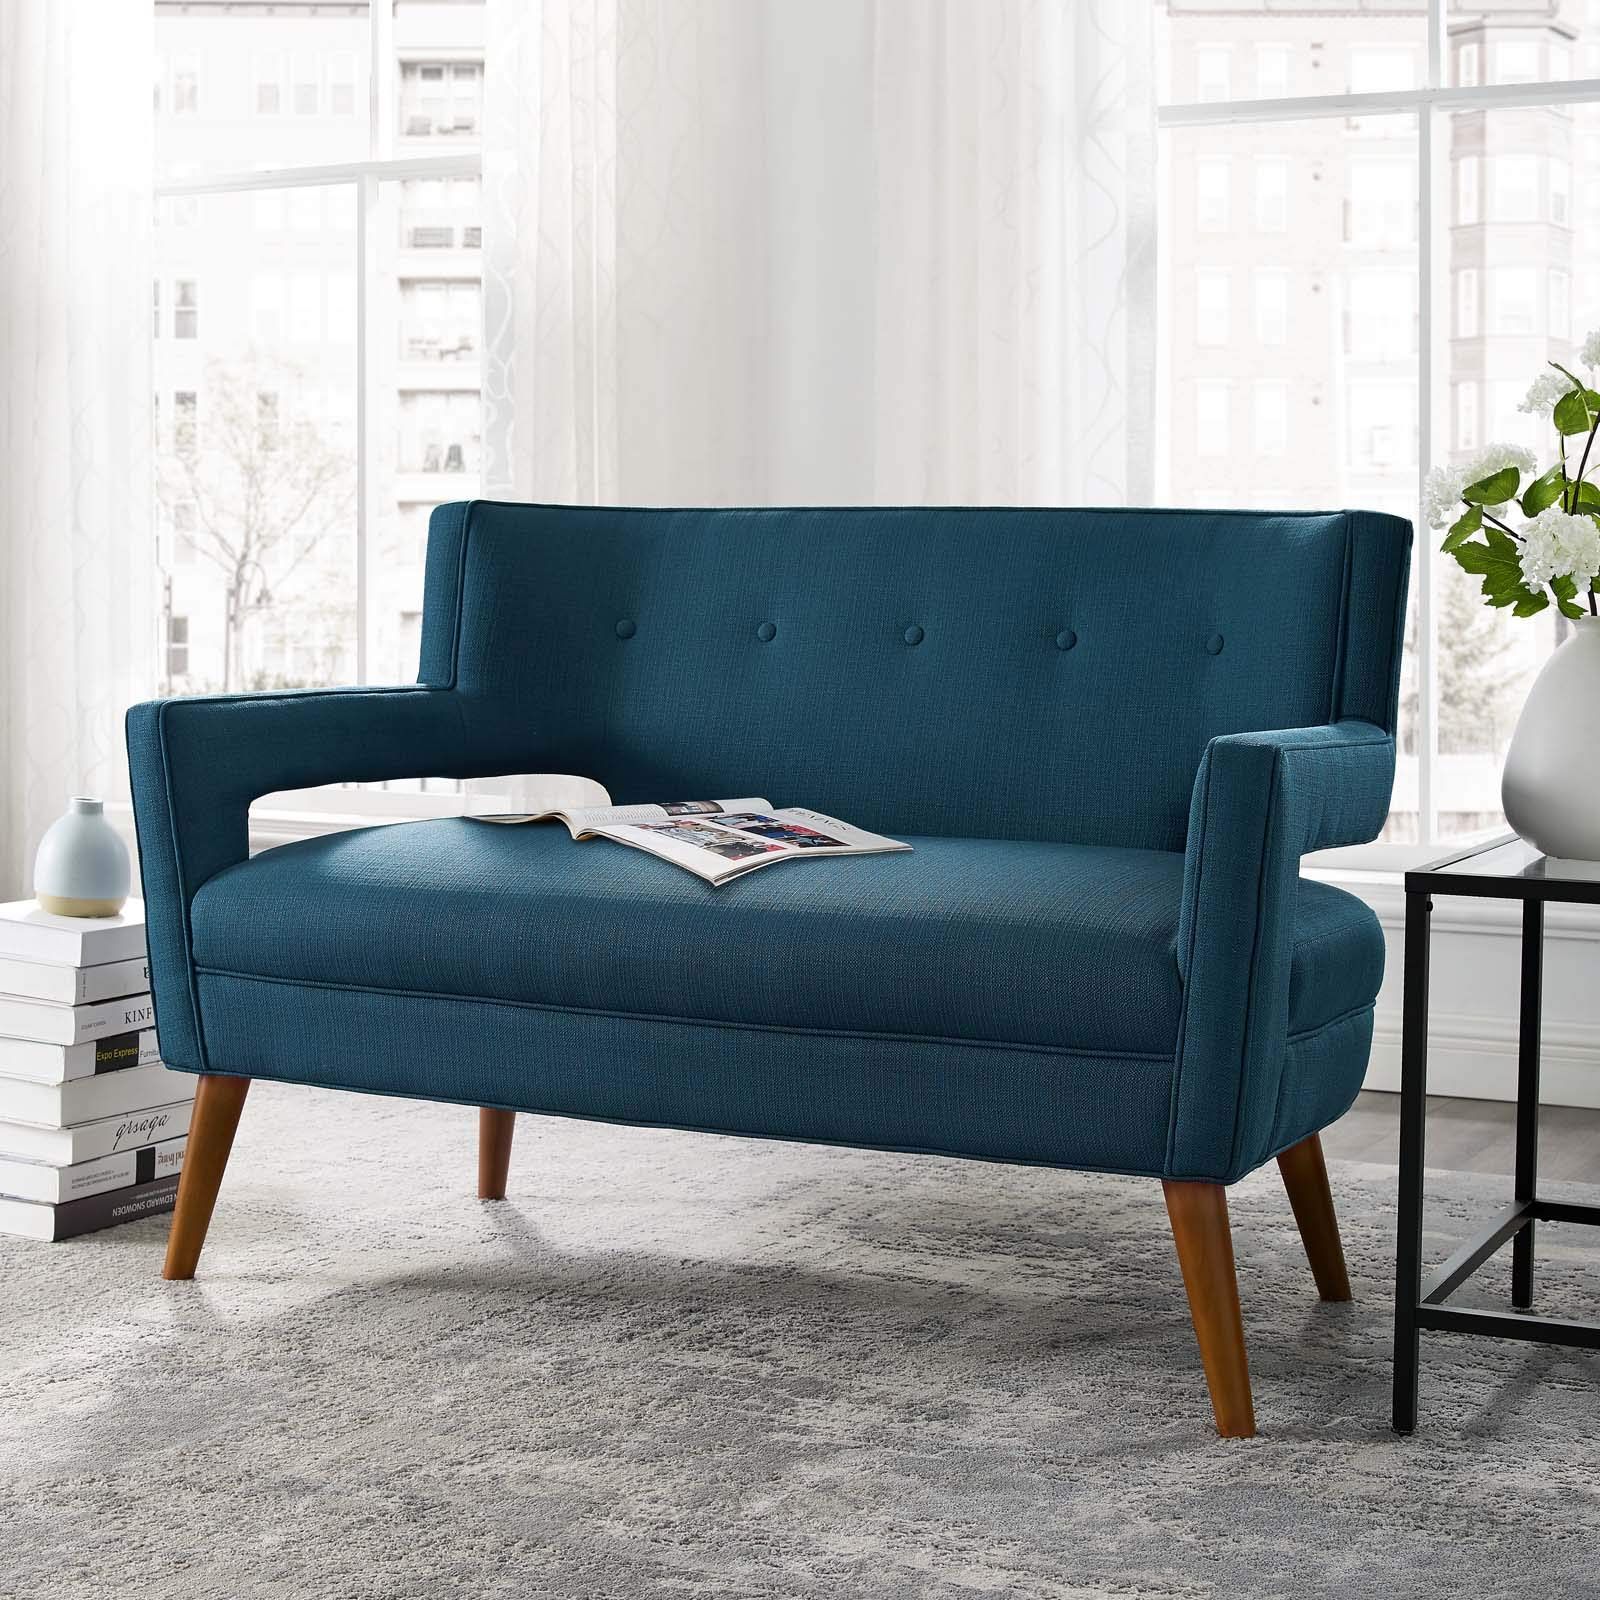 Modway Sheer Upholstered Fabric Mid-Century Modern Loveseat in Azure by Modway